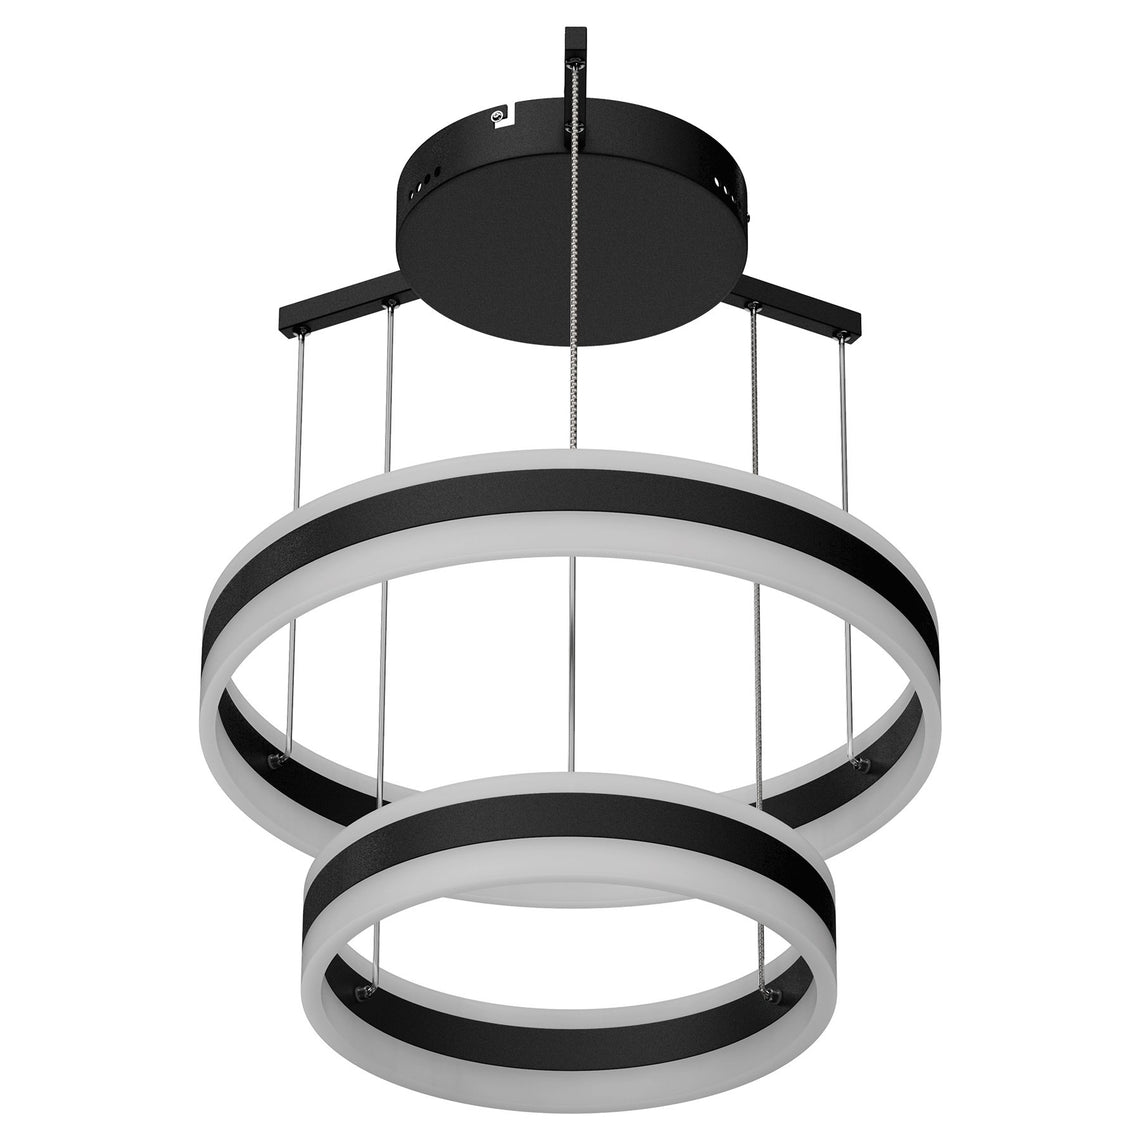 2-Ring - Unique LED Circular Chandelier - 112W - 3000K-6500K - 5600LM - Dimmable - Sand Black Body Finish